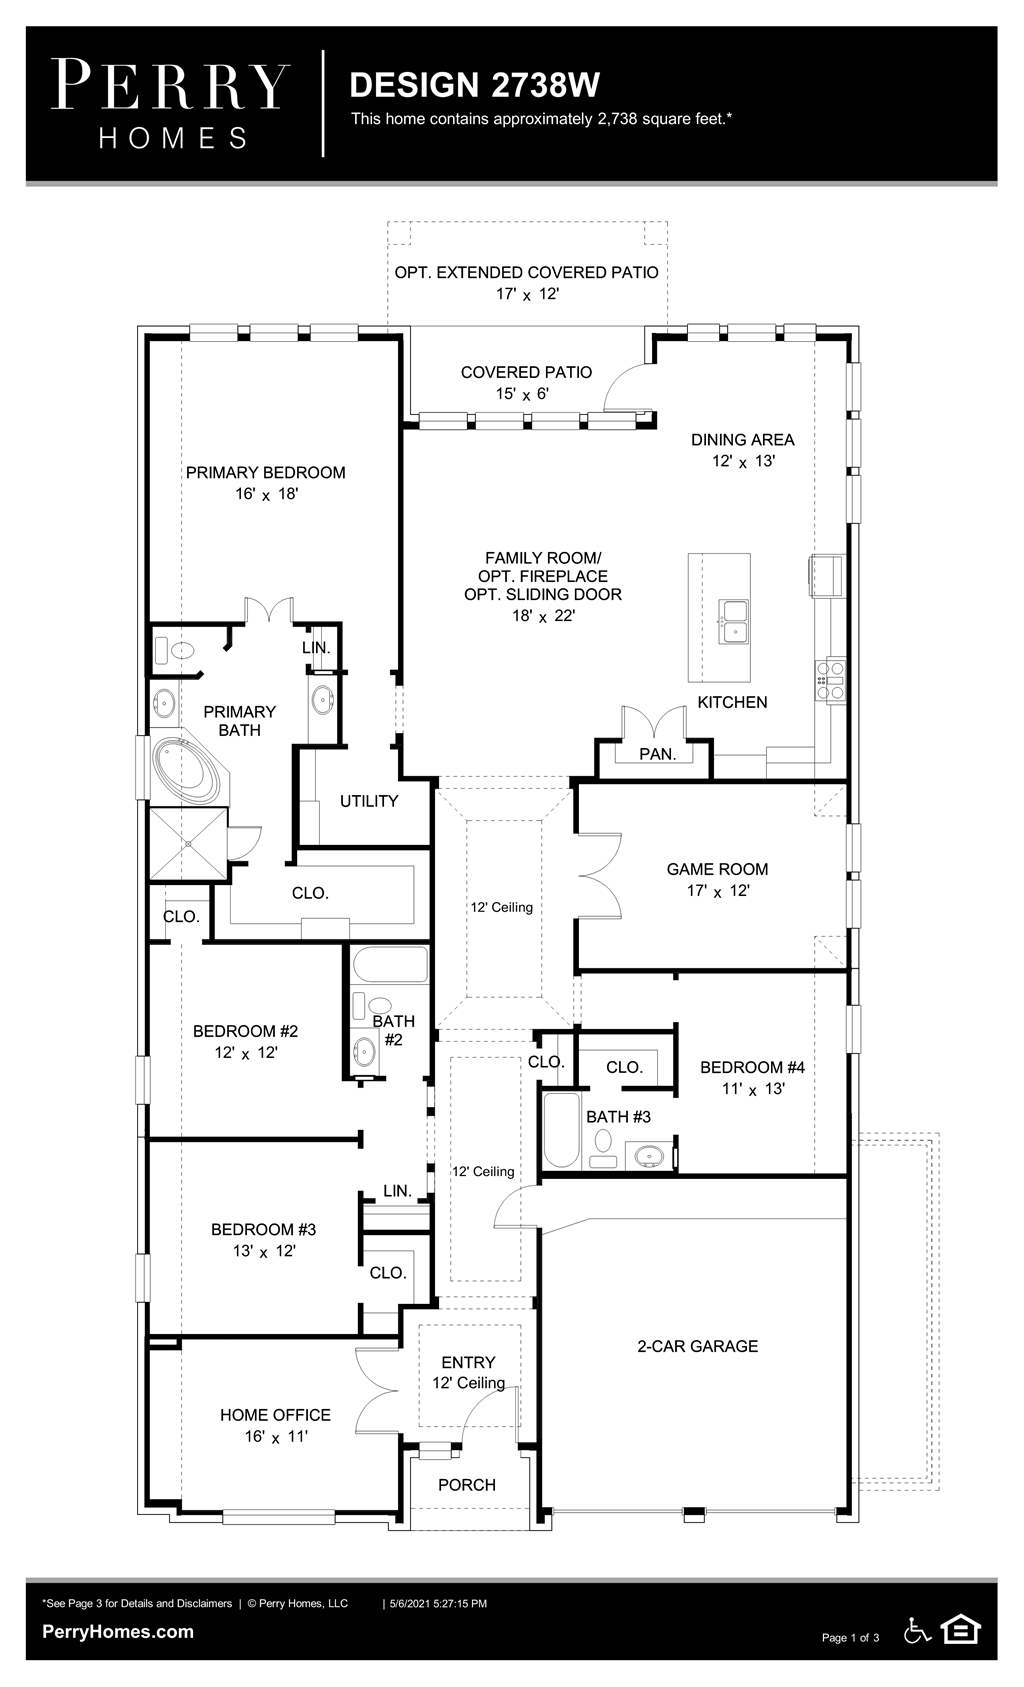 Floor Plan for 2738W